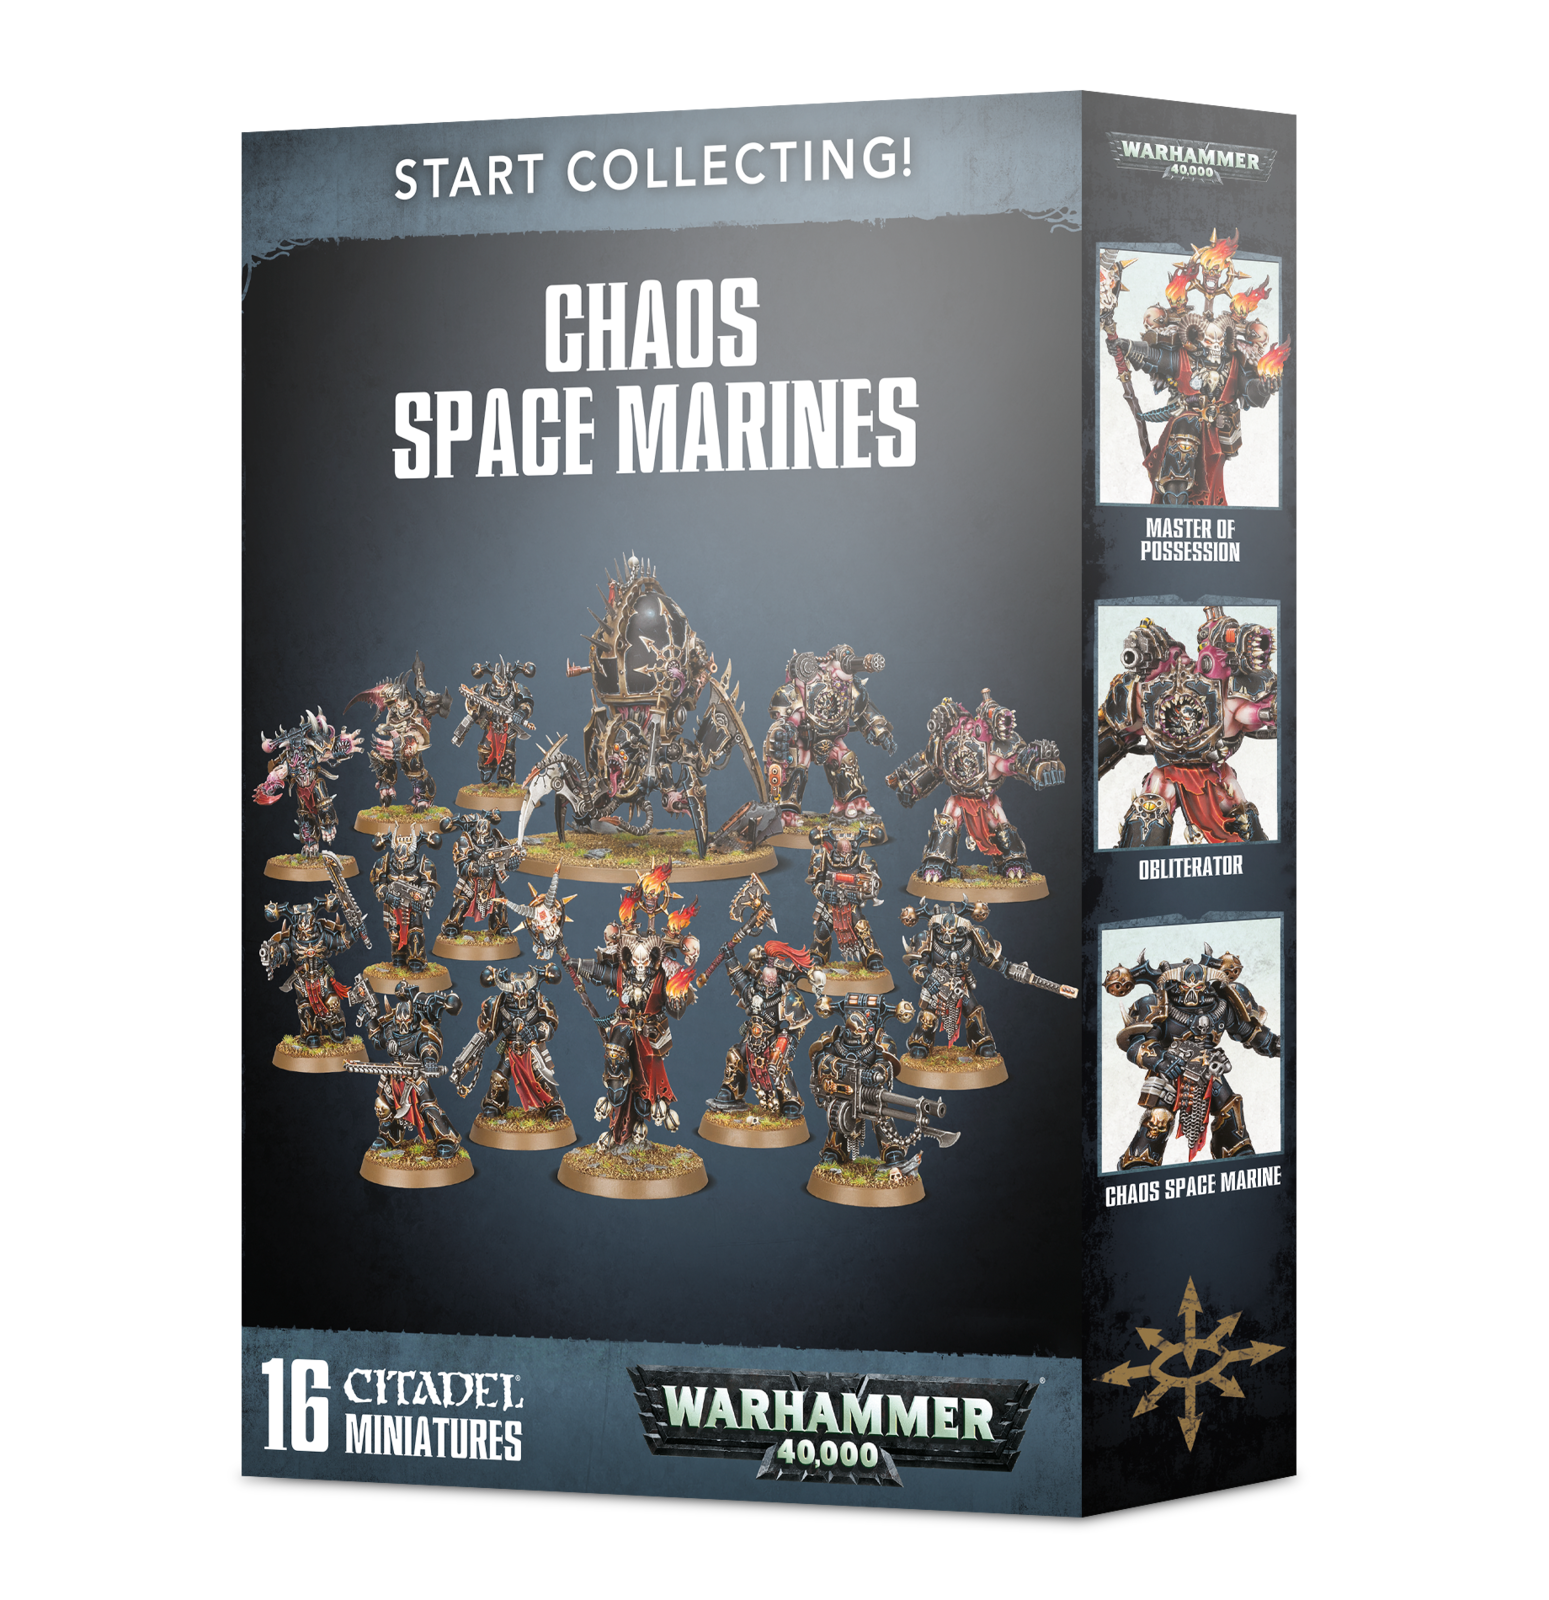 Warhammer 40,000: Start Collecting! Chaos Space Marines image